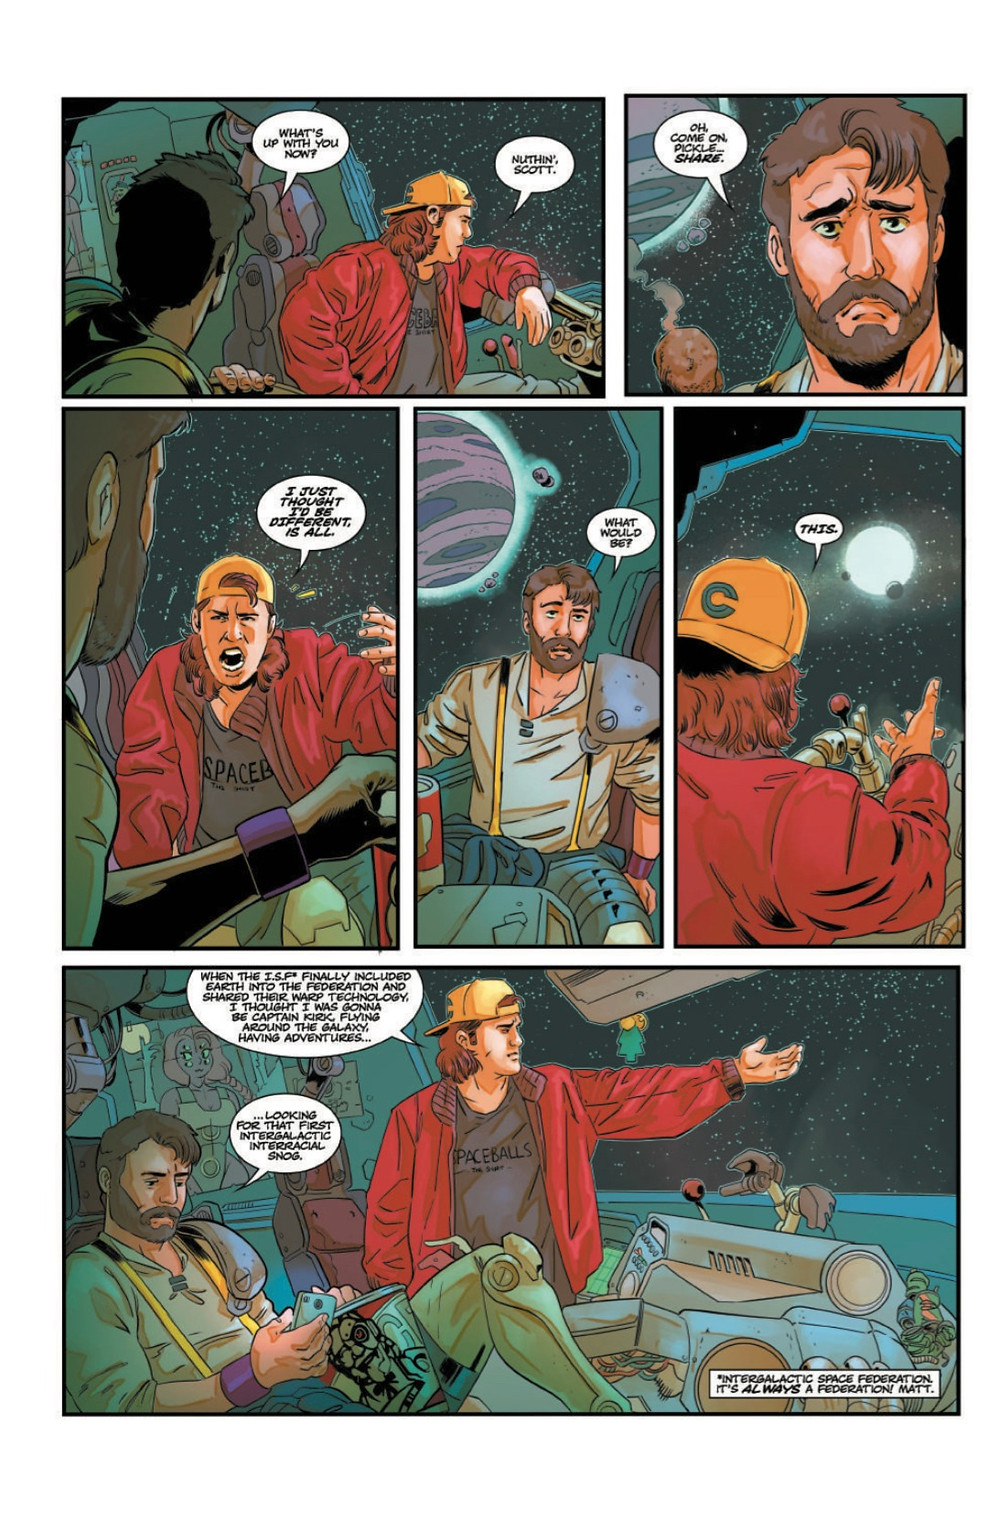 Untitled Generic Space Comedy, issue #1, page 4, self-published, Garvey/McFarlane